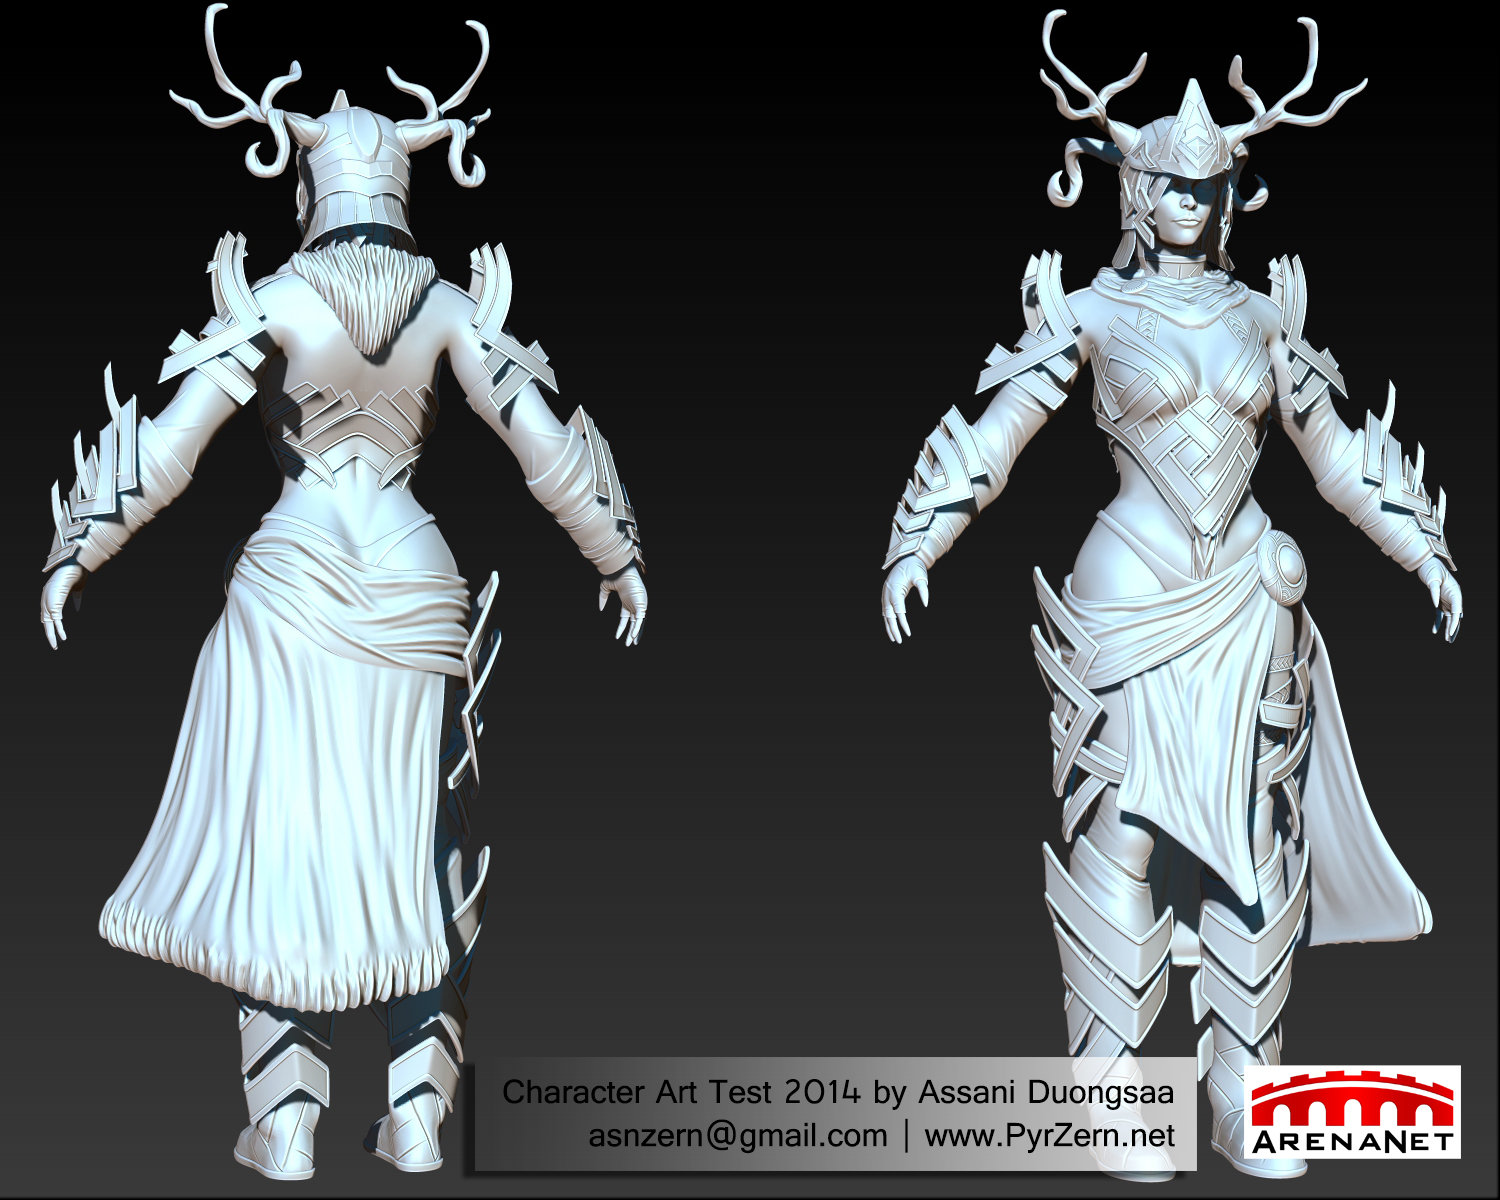 Character art test 2014 assani duongsaa   031